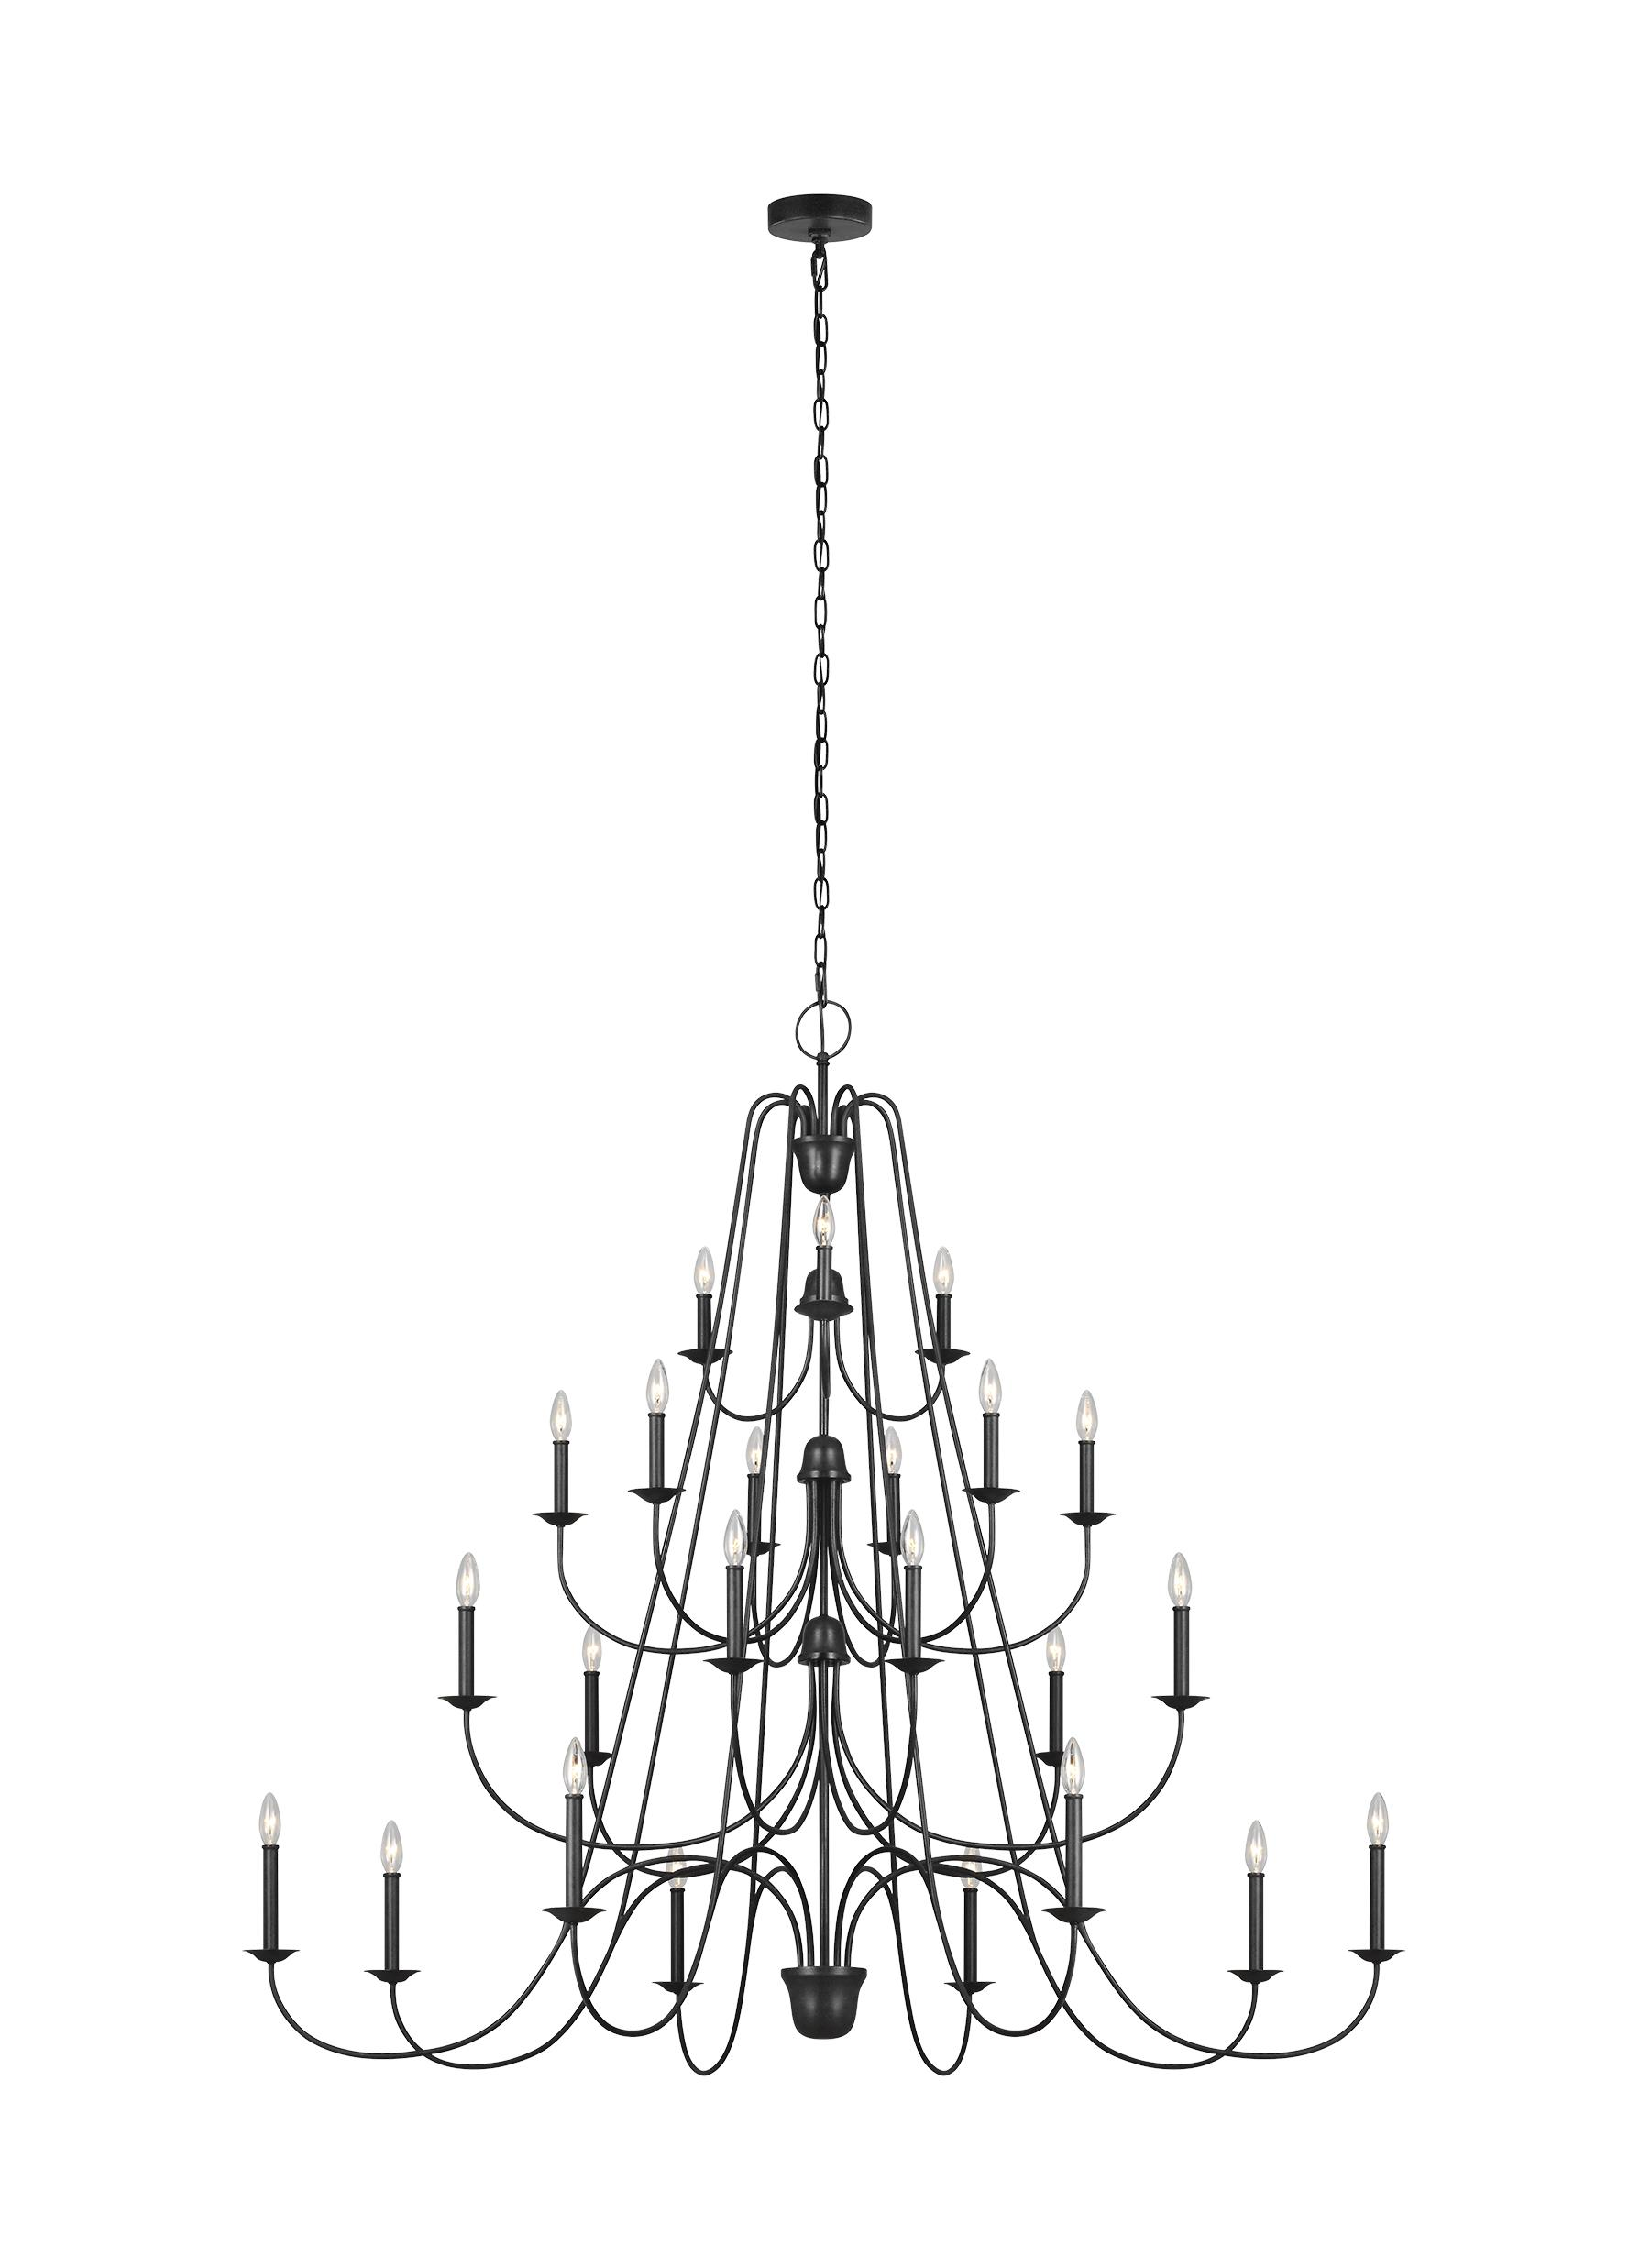 Boughton lighting collection from feiss 24 light chandelier arubaitofo Image collections